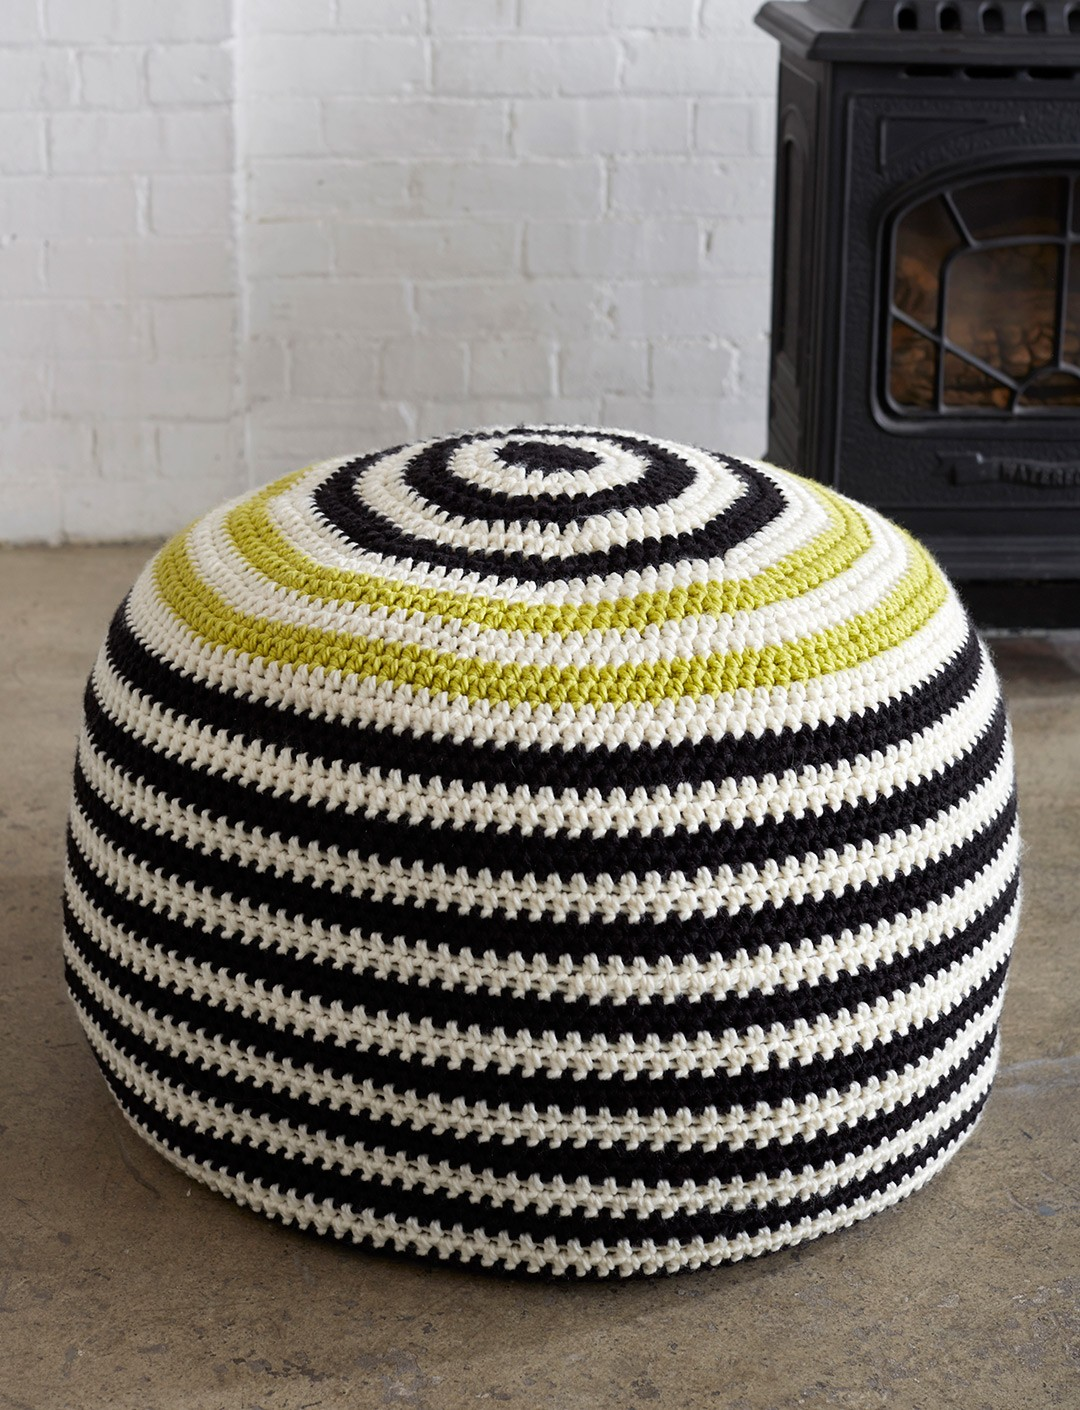 Knitted Ribbing Patterns : Bernat Graphic Stripes Pouf, Crochet Pattern Yarnspirations